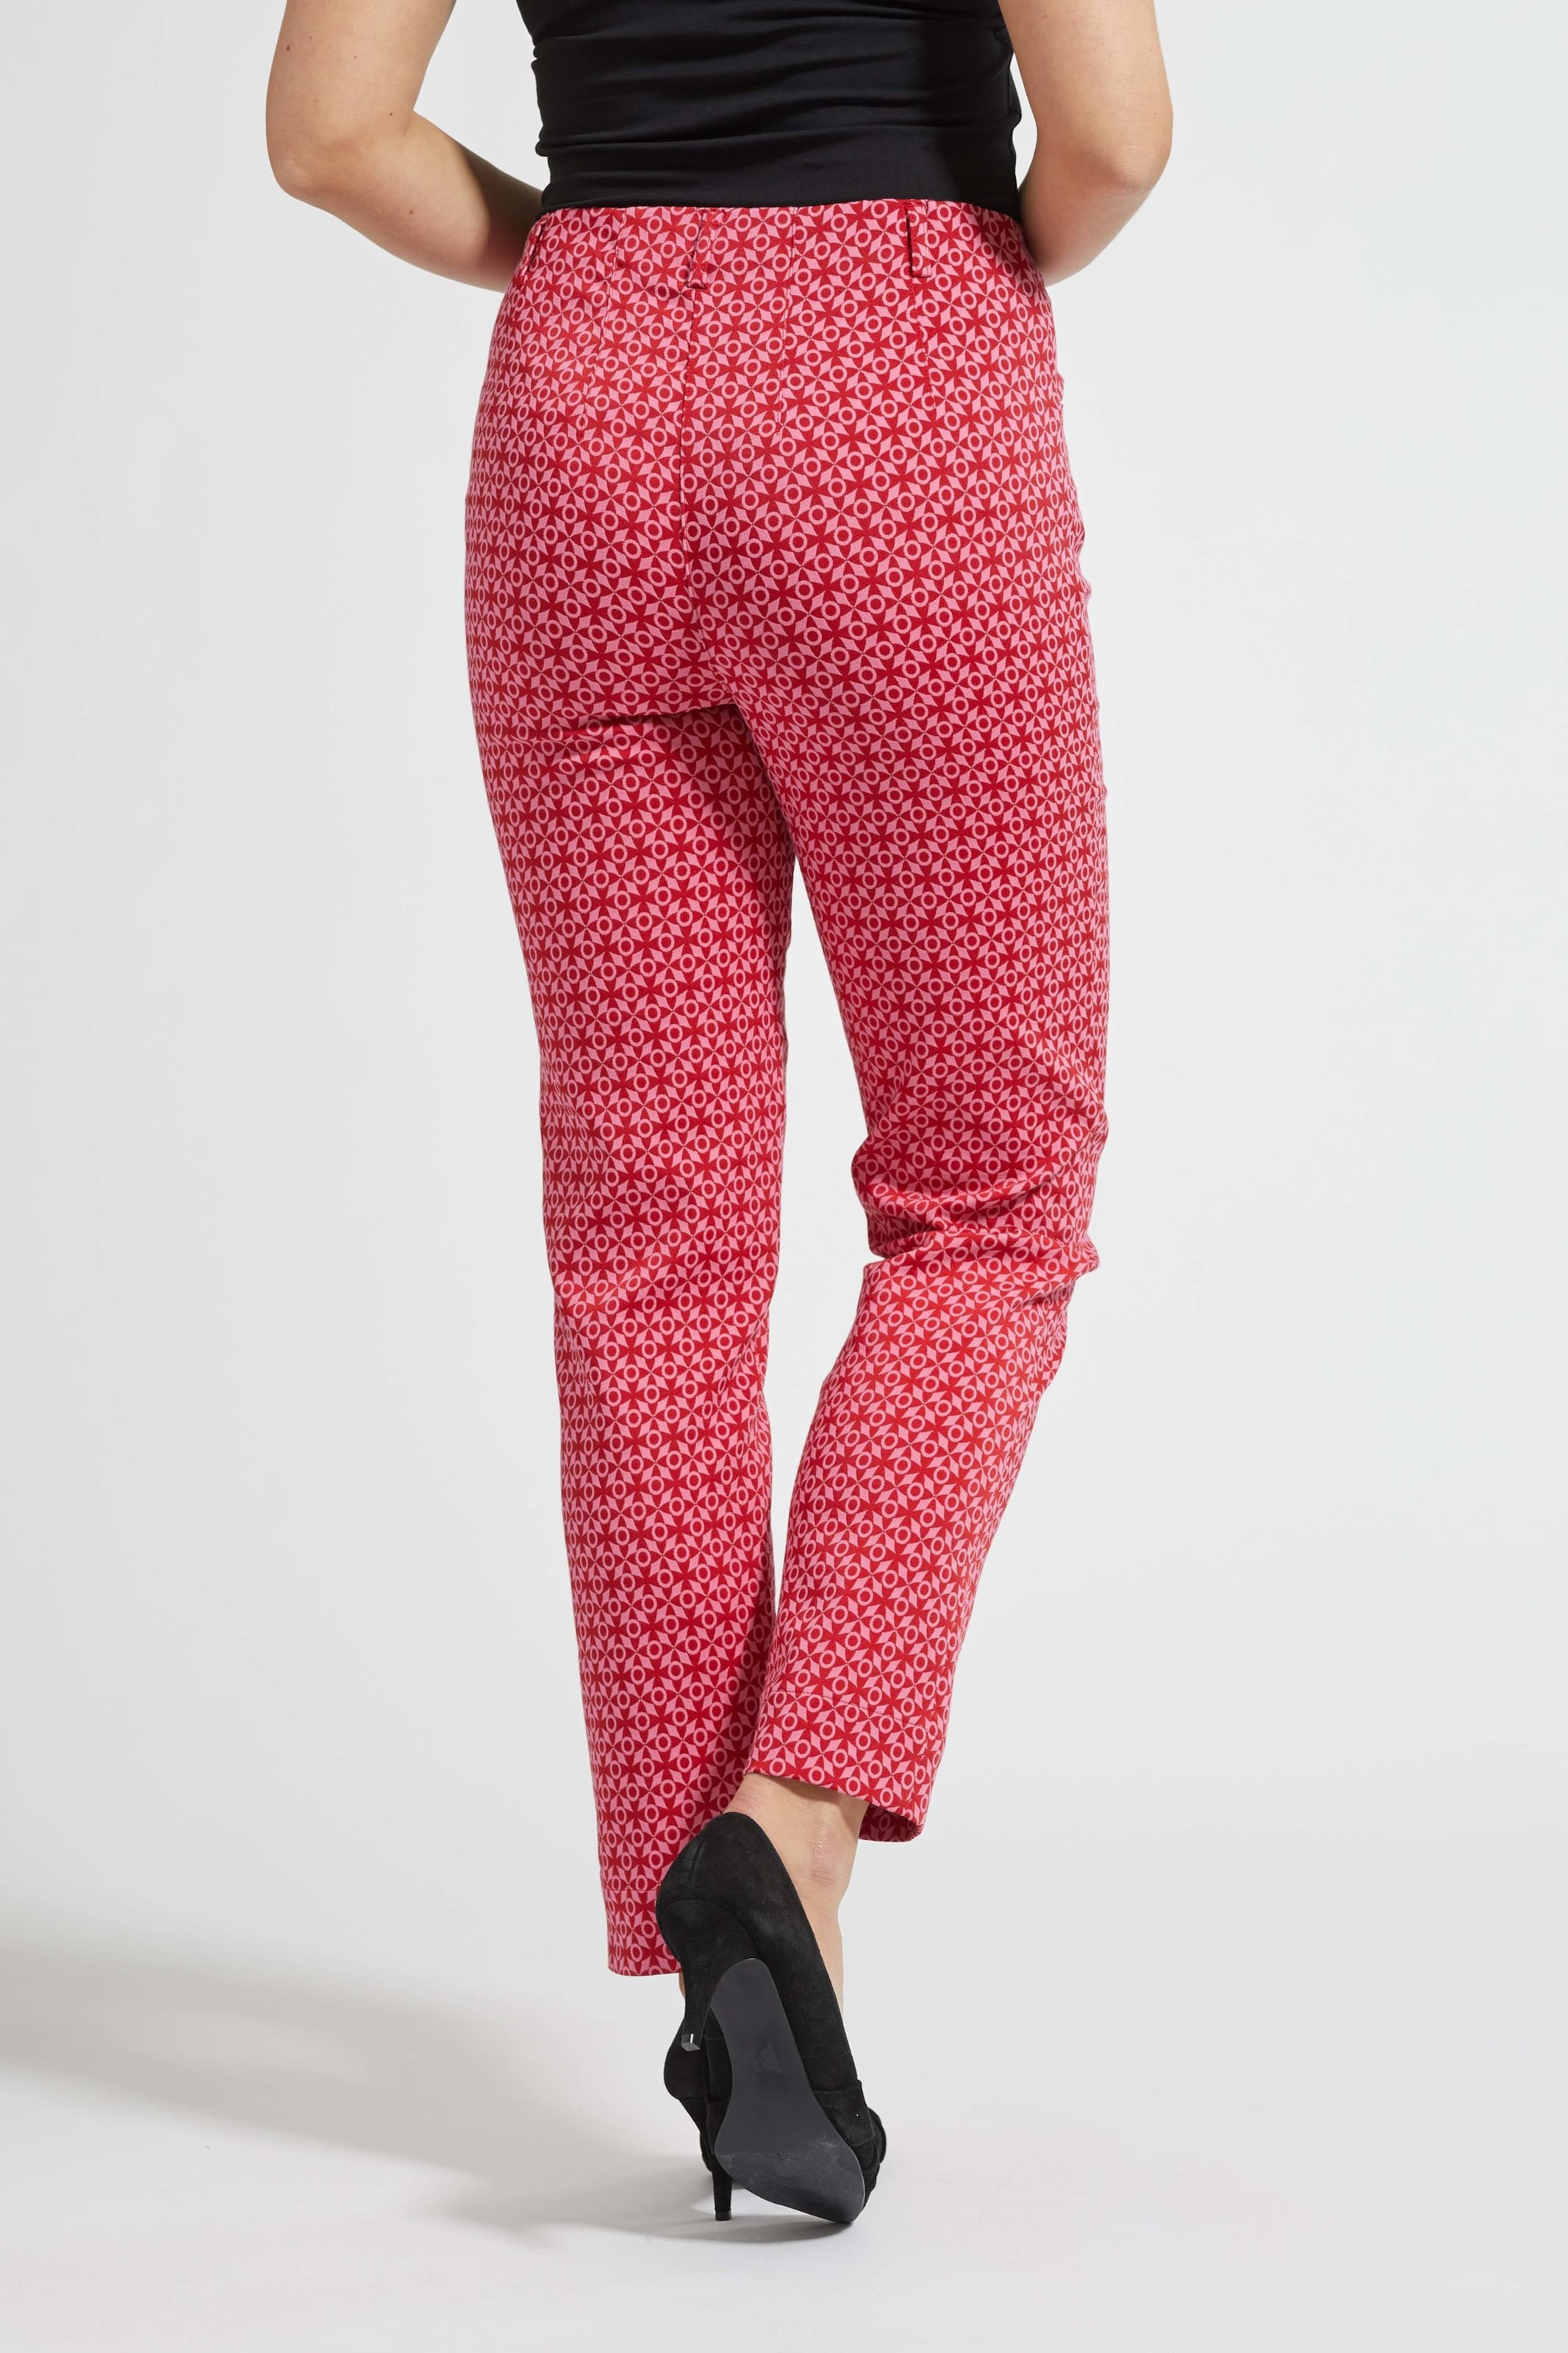 In 'kelly' Laurie Stoffhose RosaFeuerrot vmNOwny80